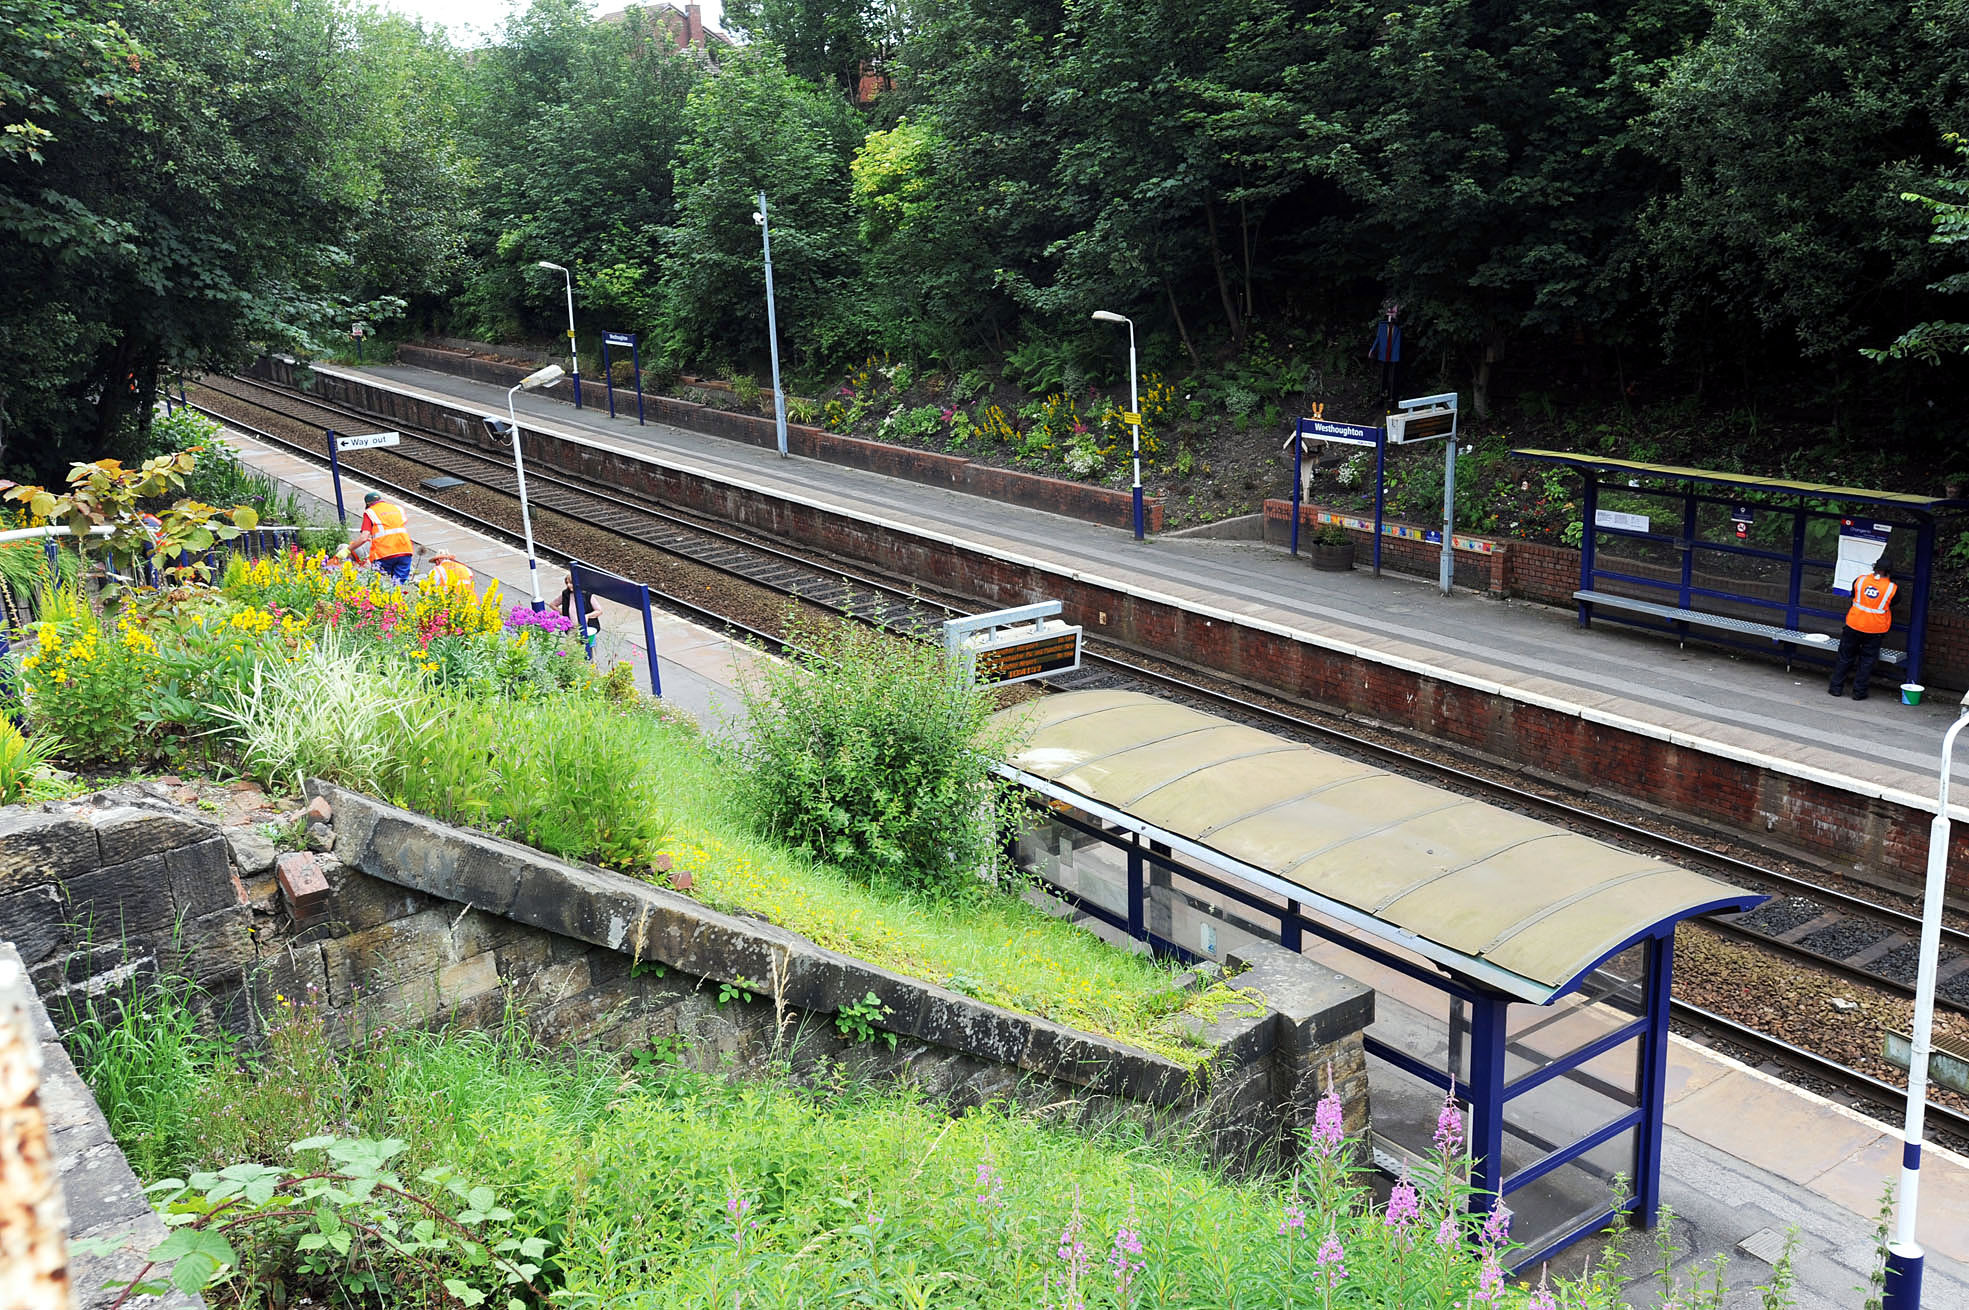 Westhoughton train station.